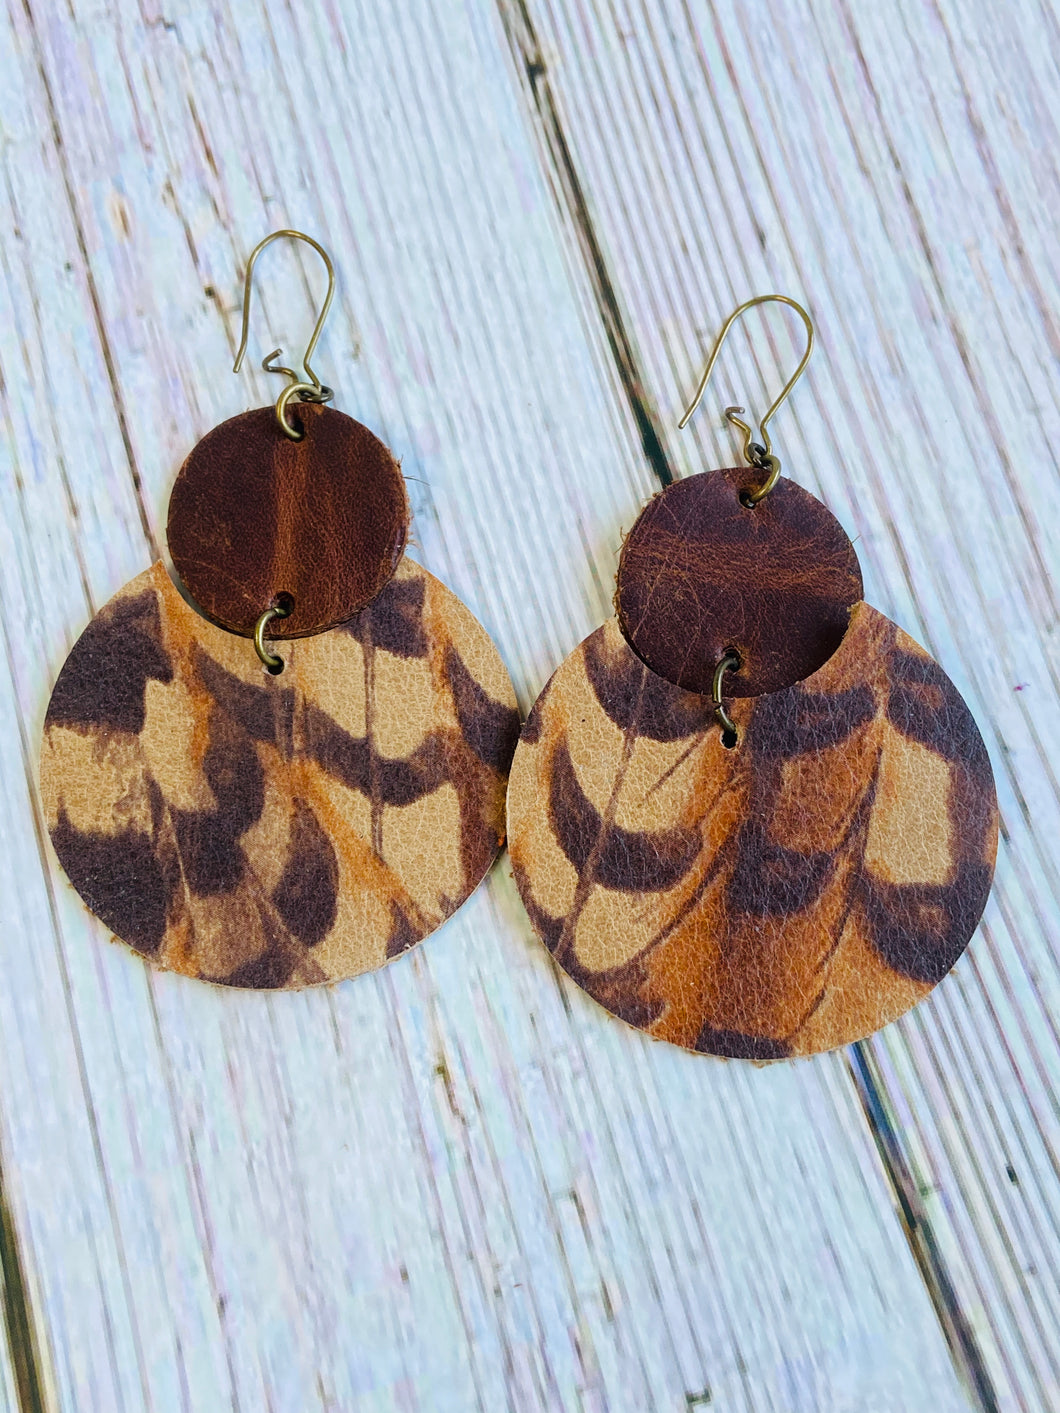 Pheasant Feather Lily Leather Earrings - Black Cat Modern Boho Handmade Jewelry